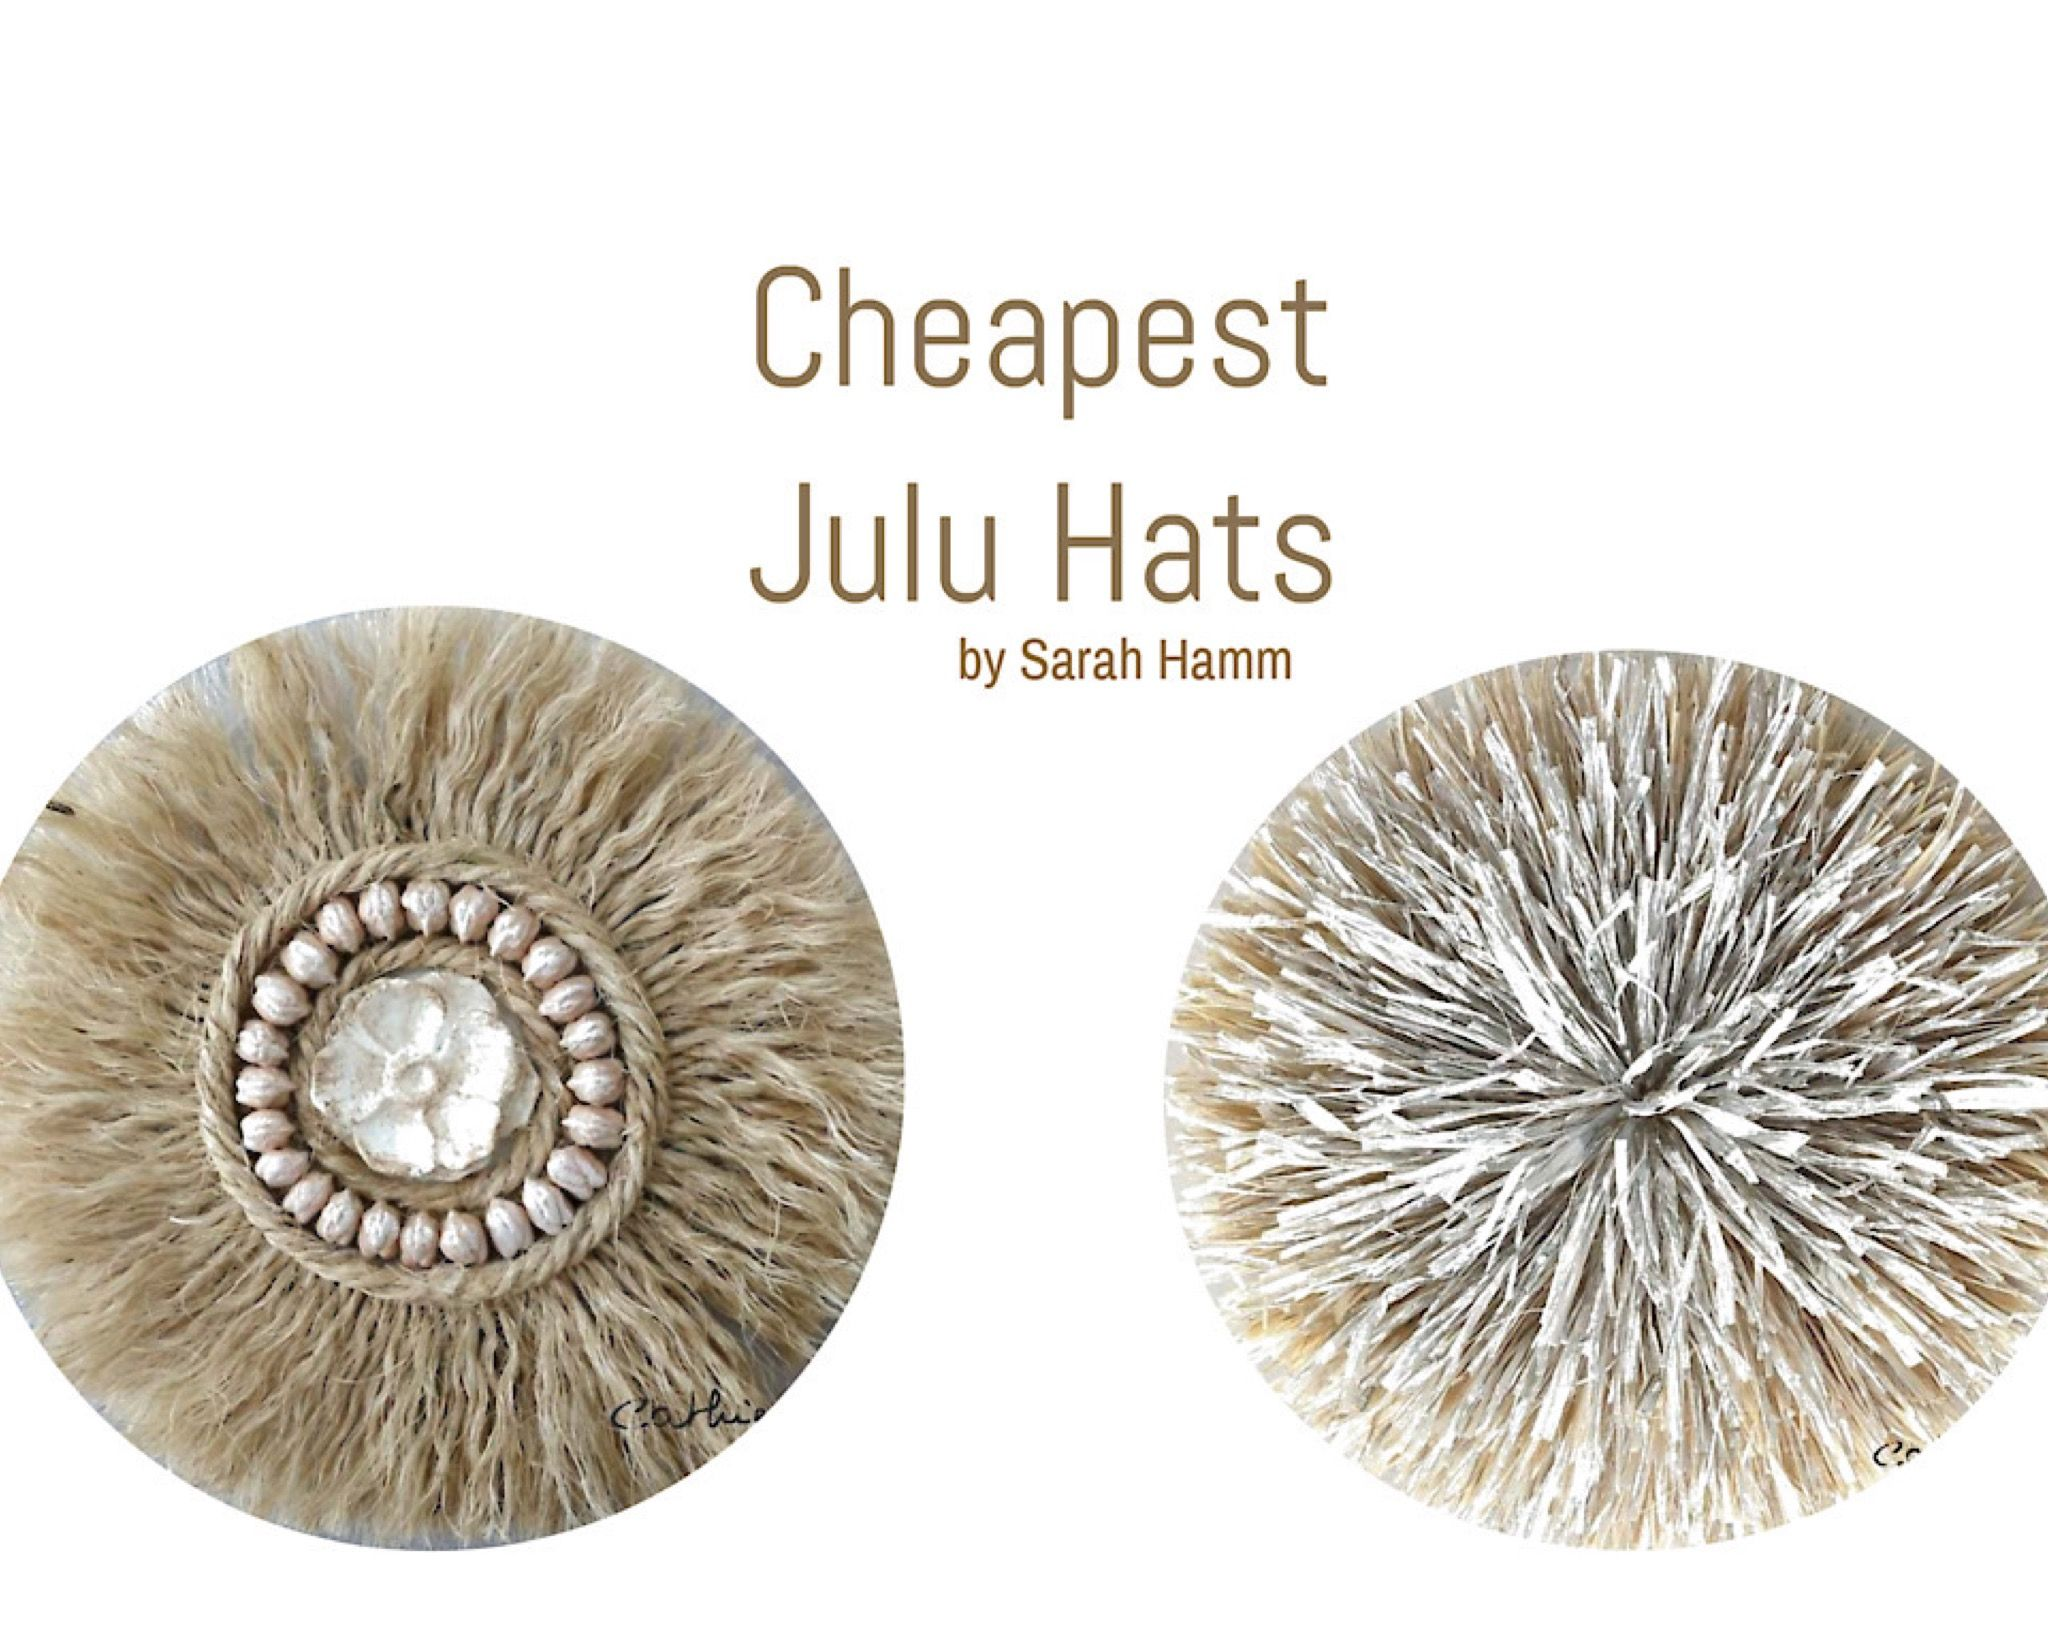 UNDER 100$ julu hats! #LTKunder50 #LTKunder100 These hats symbolize prosperity and are believed to posses the positive qualities of birds and the beauty as well as fragility of life.   #JujuHat #JujuHats #FeatherHeaddress #BamilekeFeatherHeaddress #interiordesign #africaninspired #africaninspiration #africanculture #africanart #africanarts #africandecoration #africandesign